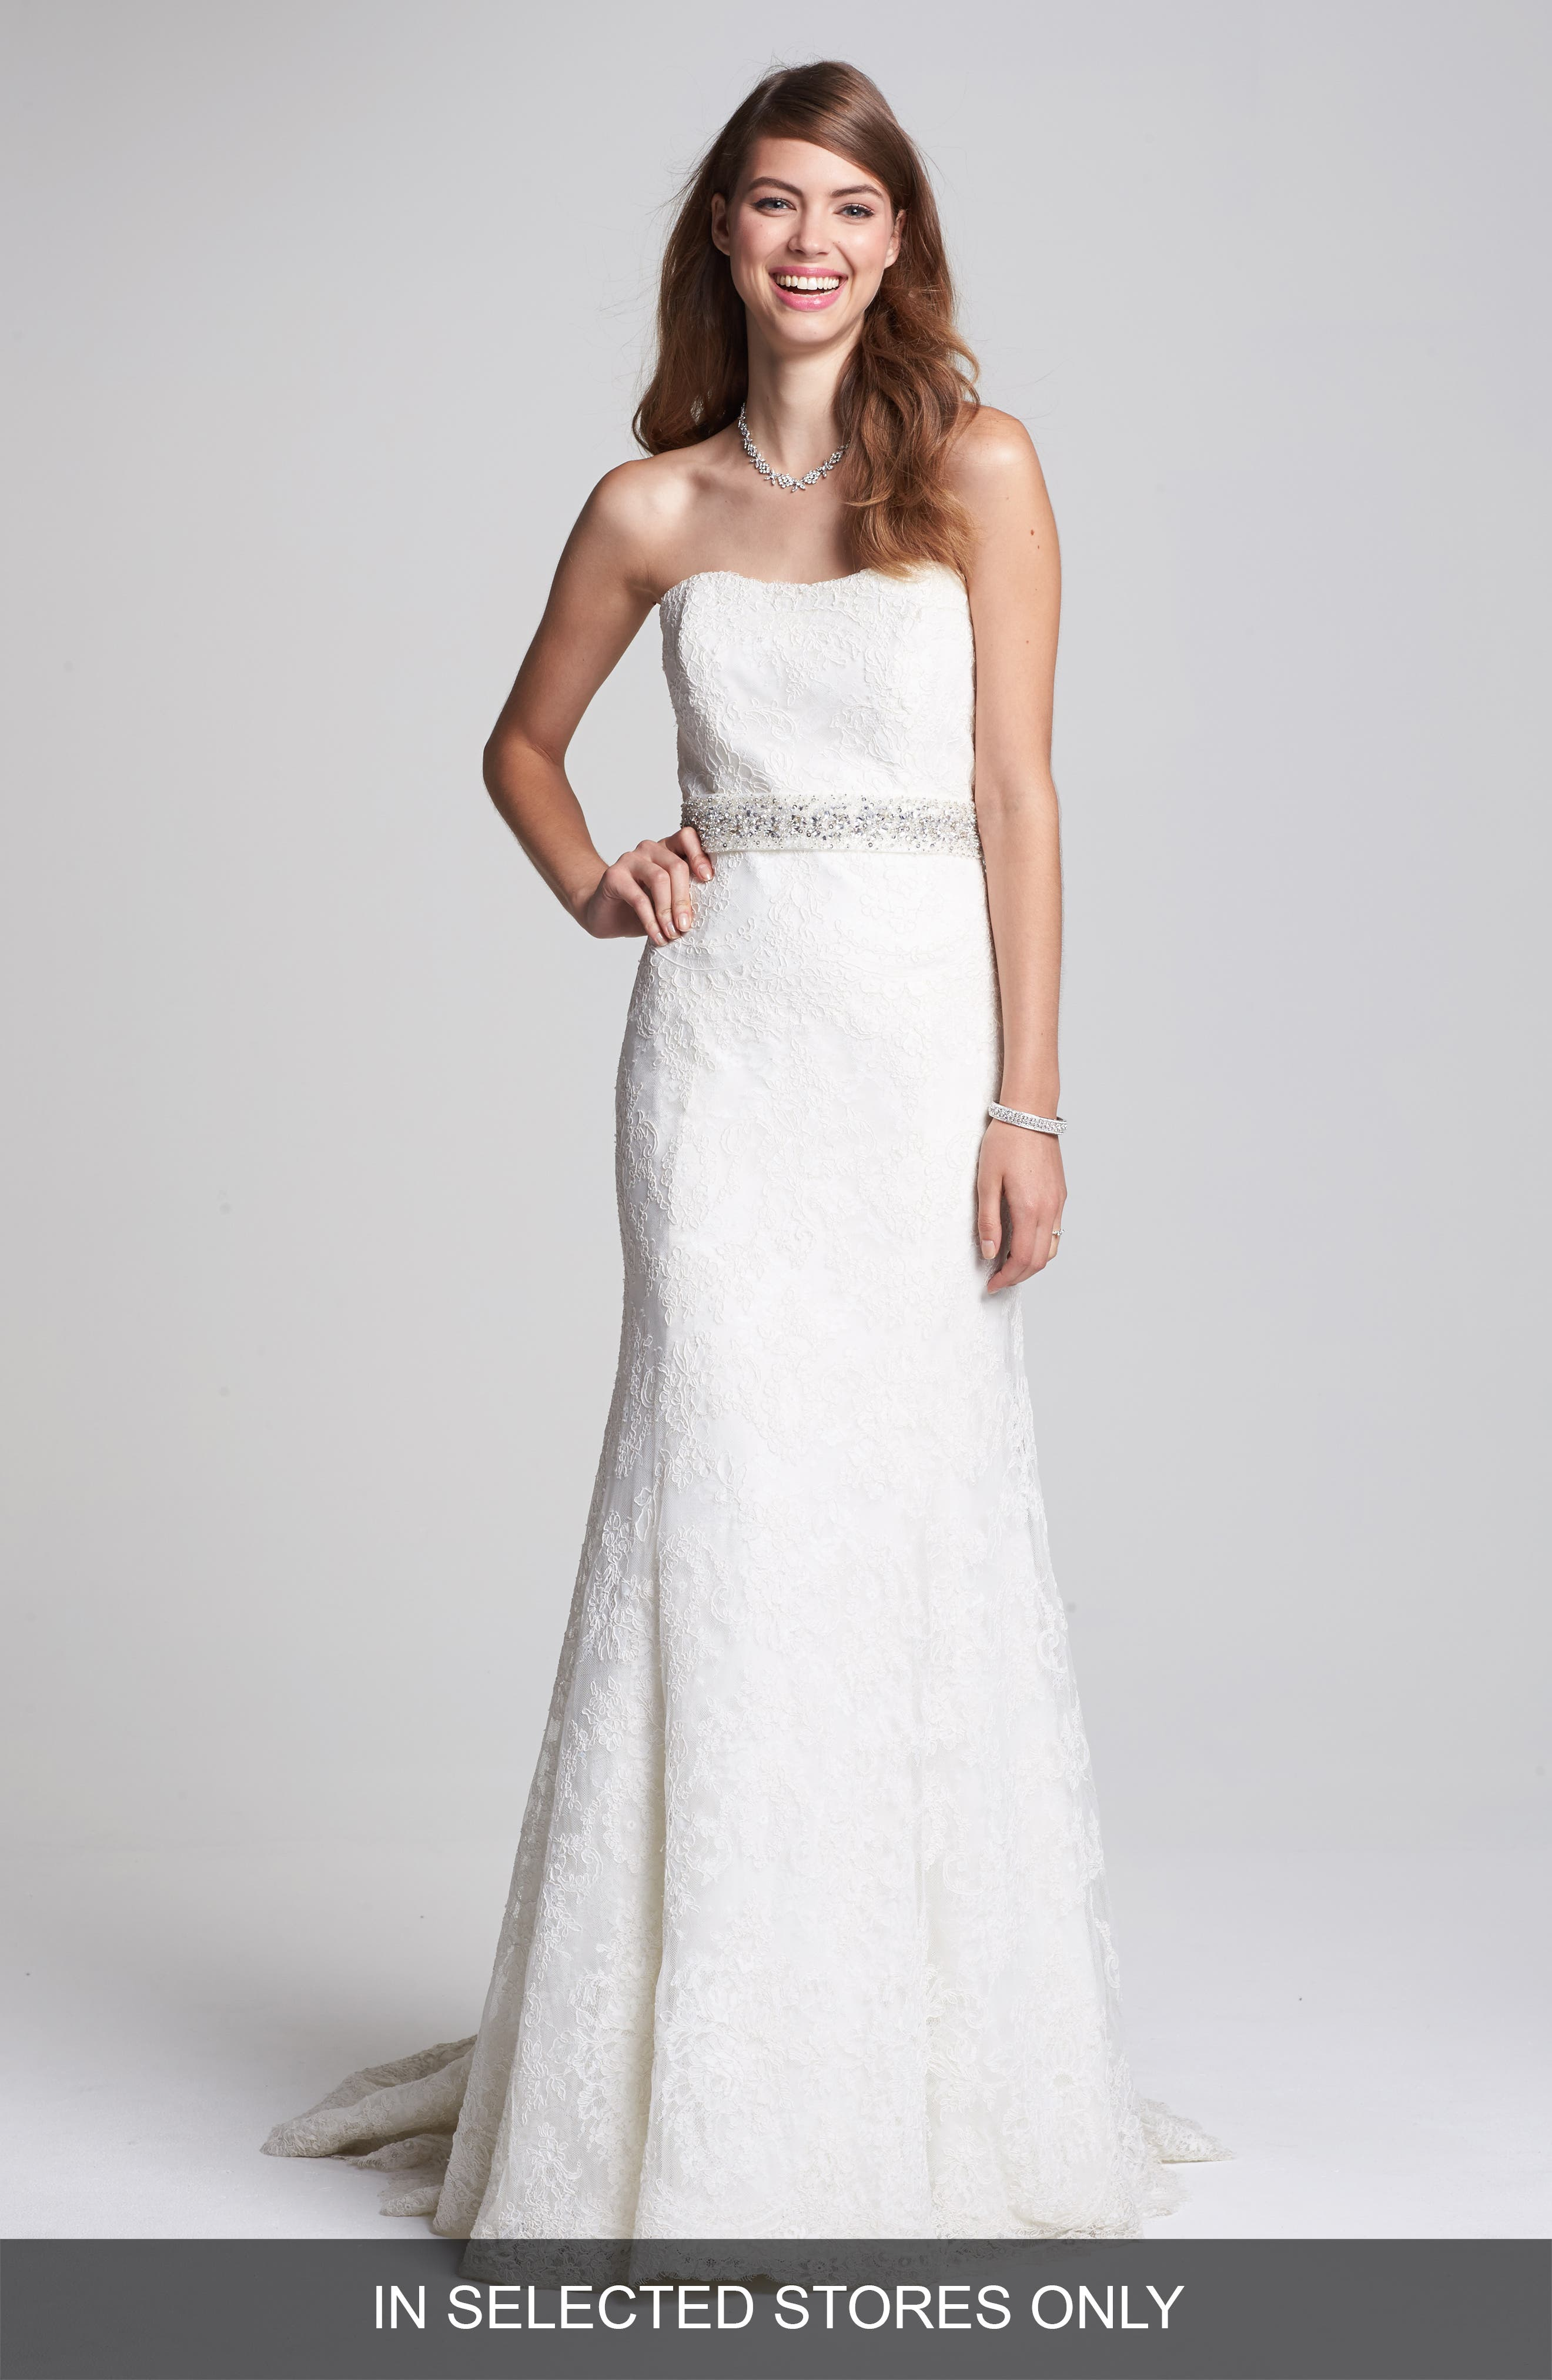 BLISS Monique Lhuillier Strapless Lace Wedding Dress with Beaded Waist (In Stores Only)